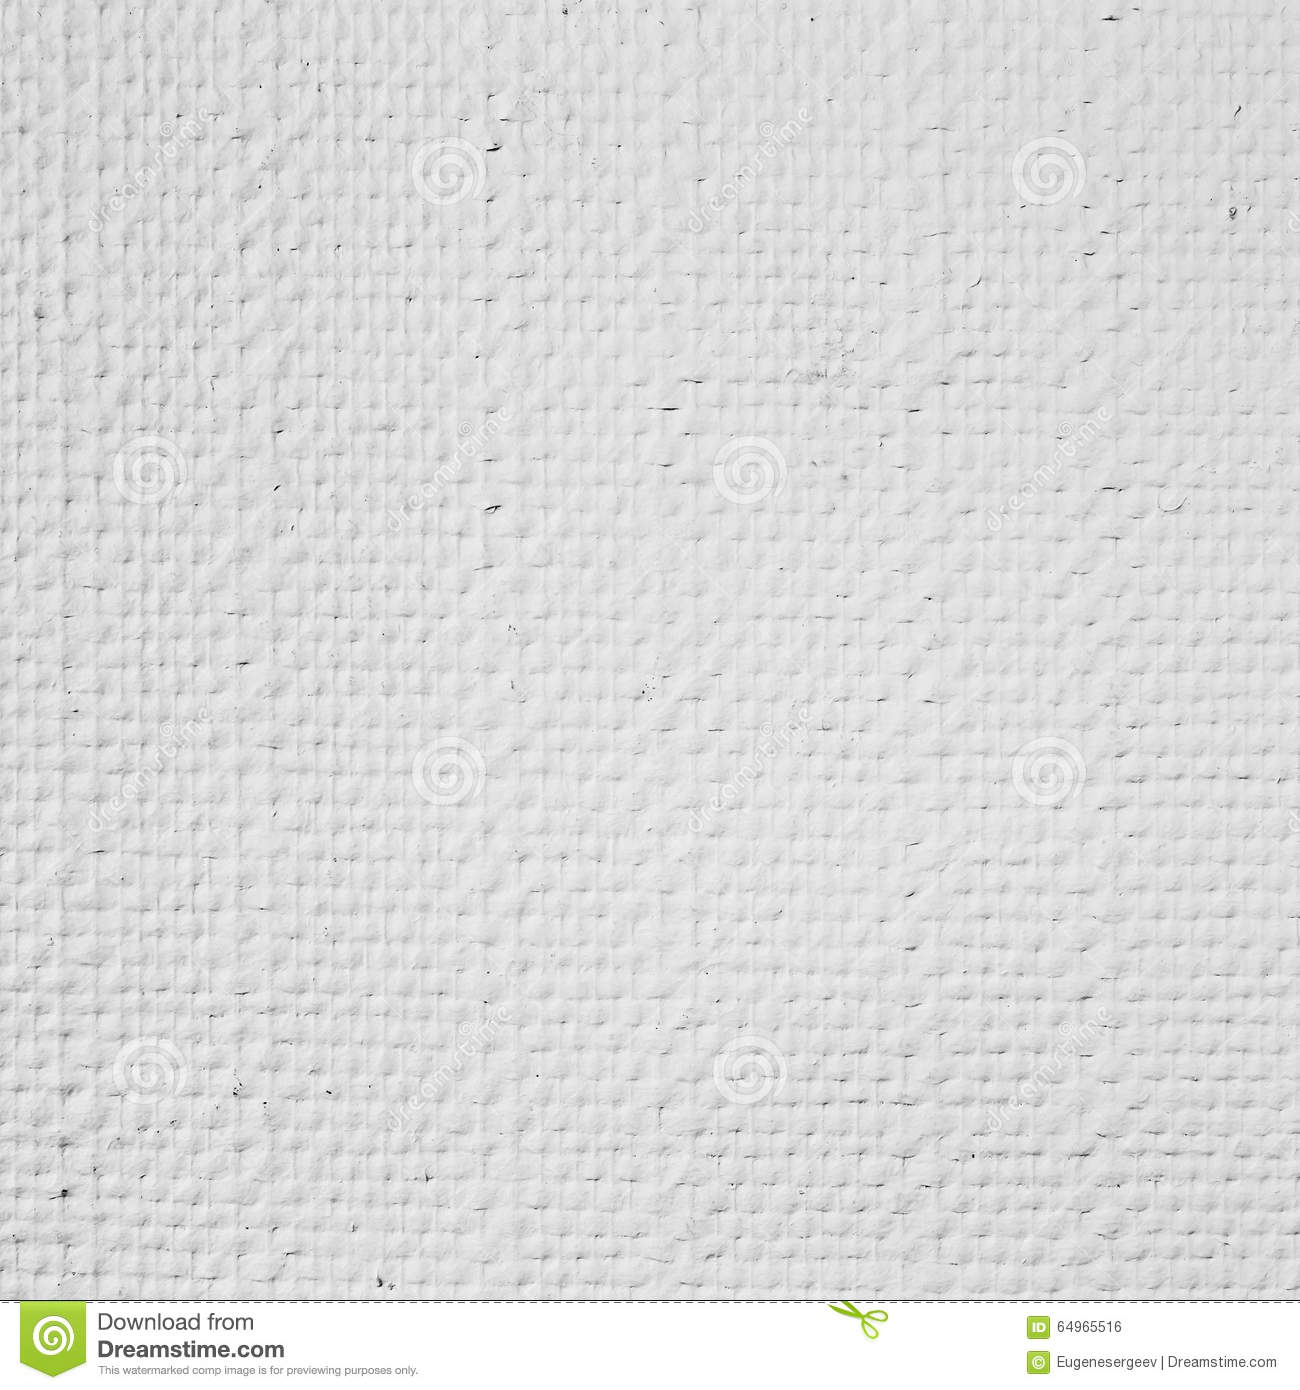 White Embossed Paintable Wallpaper, Square Detailed Background Photo Texture